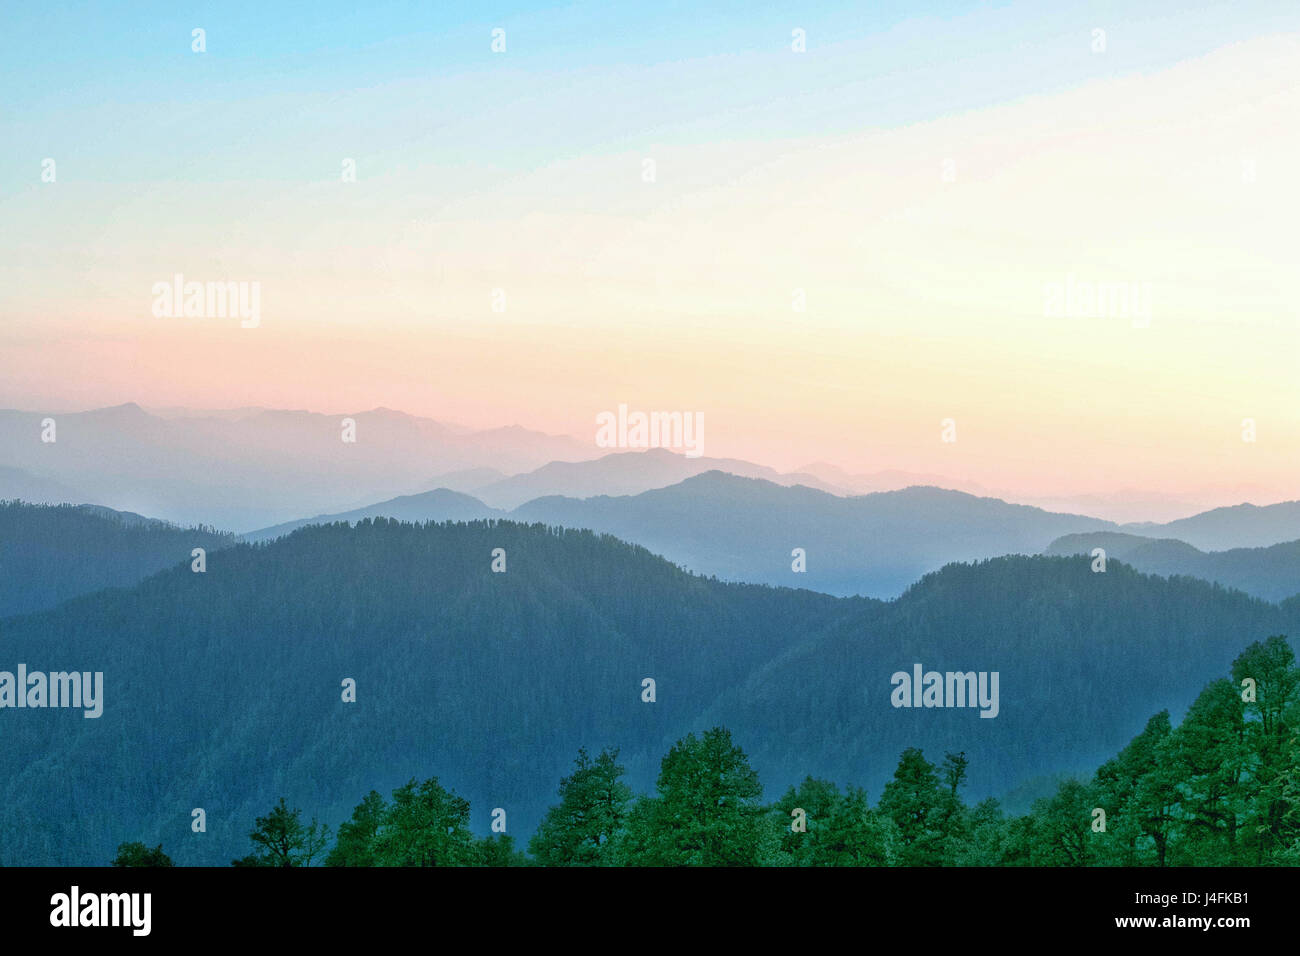 Mountain layers of Himachal Pradesh, India, Asia. - Stock Image